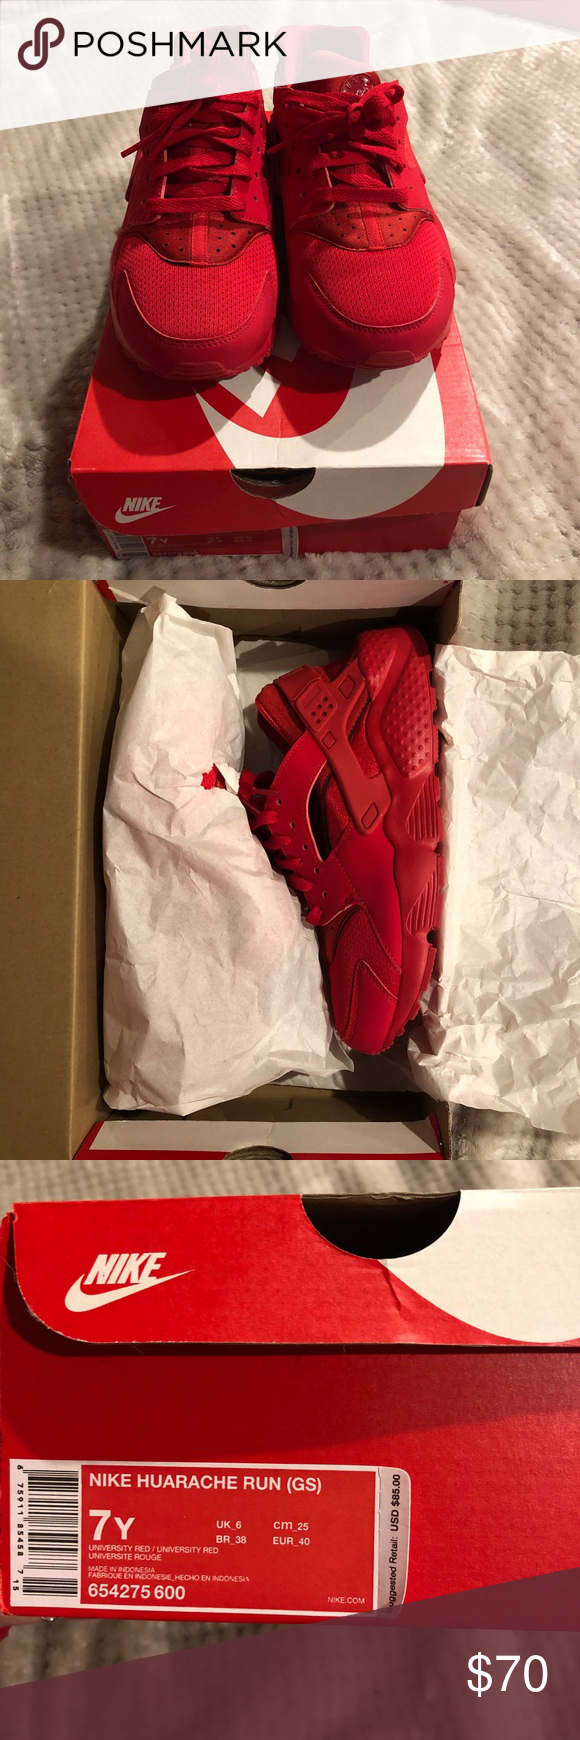 dcbc2bfbbf12 red huaraches all red huaraches. super comfy and cute sneaker. size ...